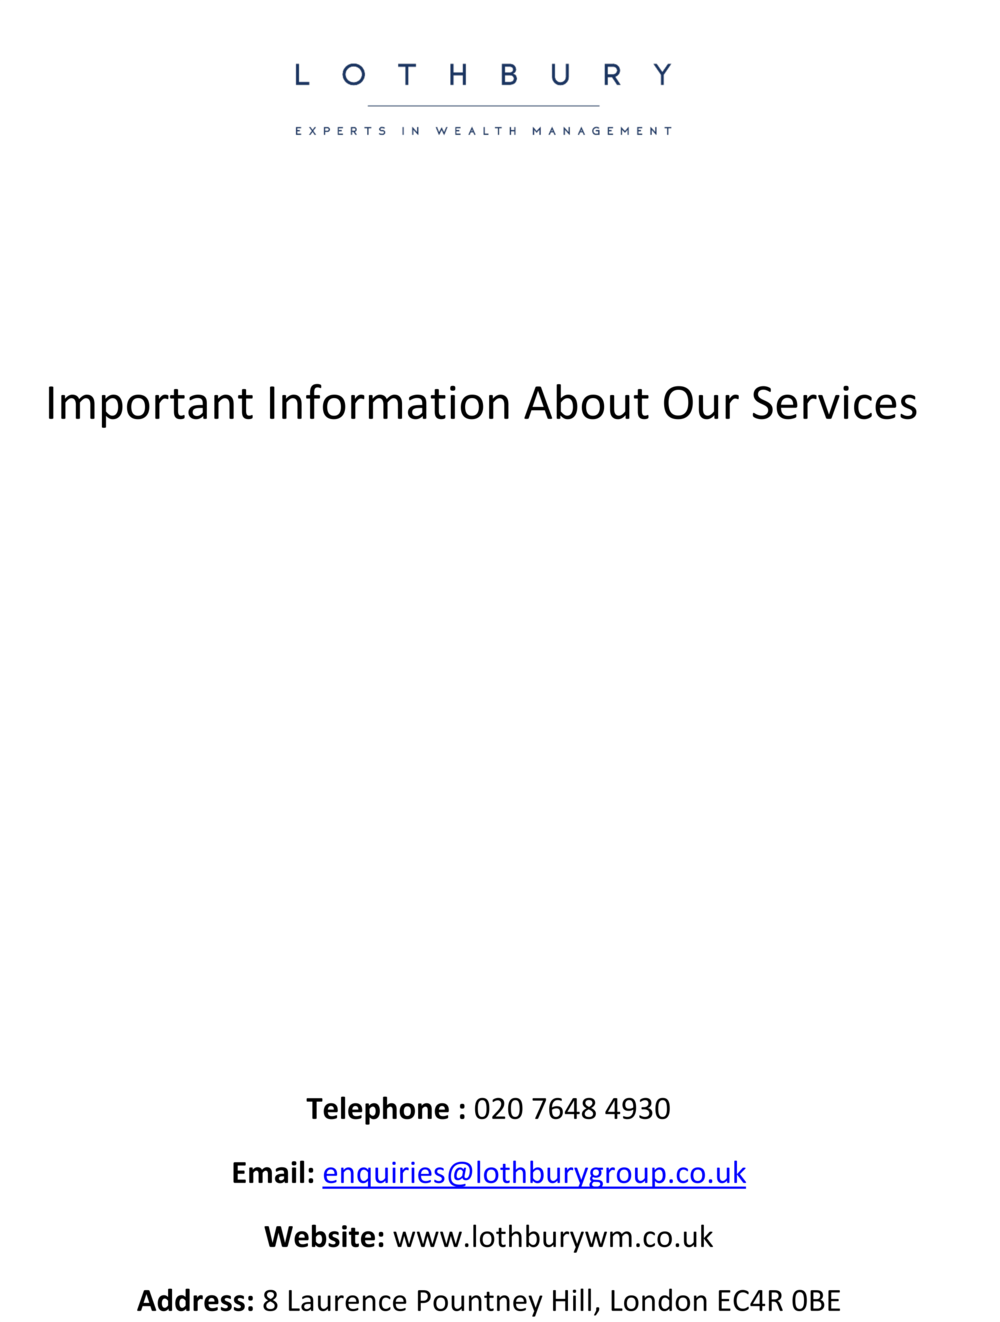 IMPORTANT INFORMATION ABOUT OUR SERVICES - This document will give you more details about our services and a guide to the cost of these services. Our costs are based on your individual needs and are usually fixed monetary amounts rather than percentages of investments